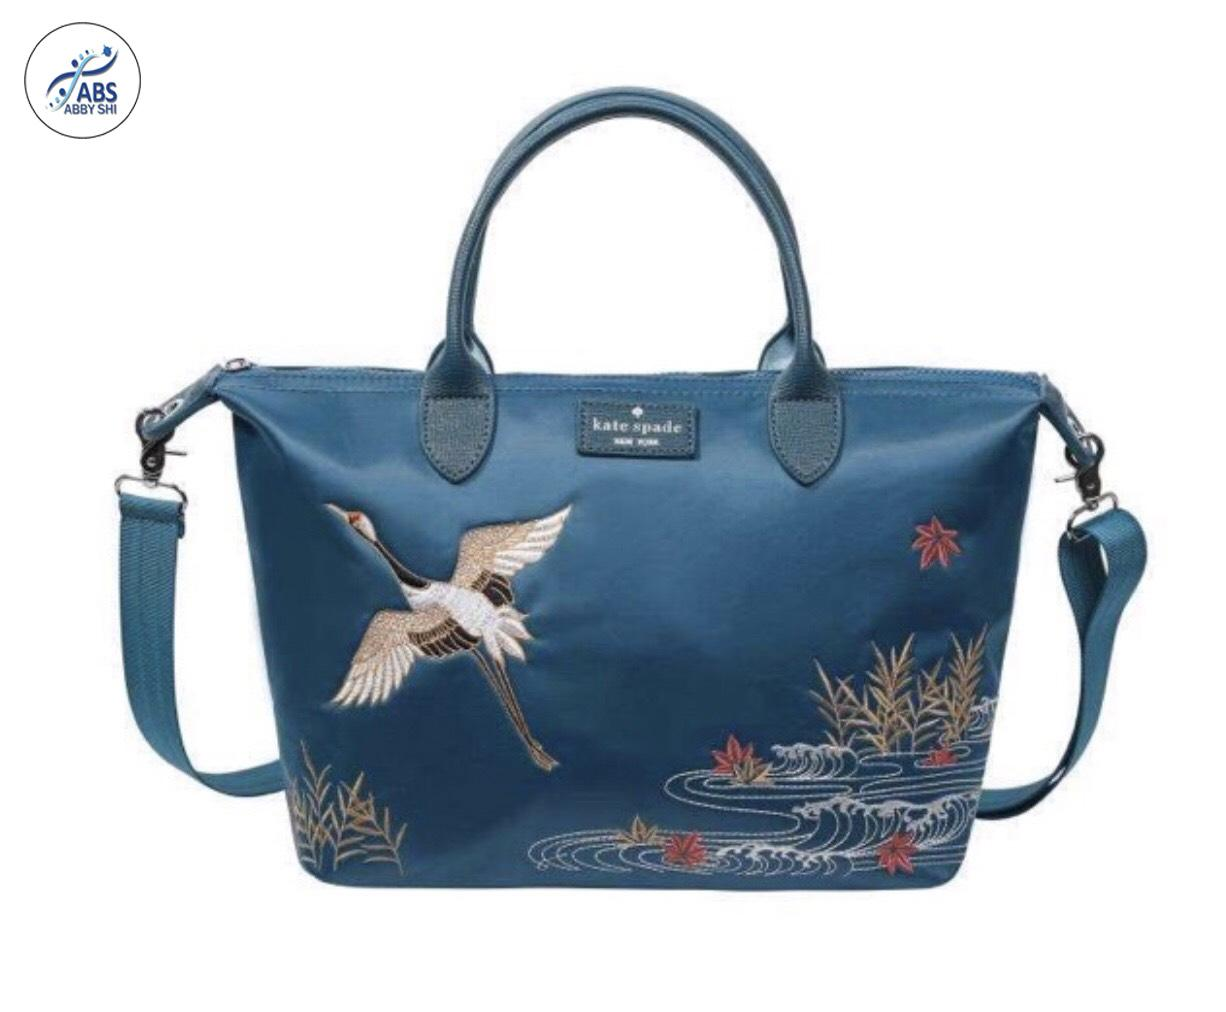 2b48583d12 ABS ABSL  619 KS Classic Ladies Nylon Bag Popular Embroidery Nylon Bag